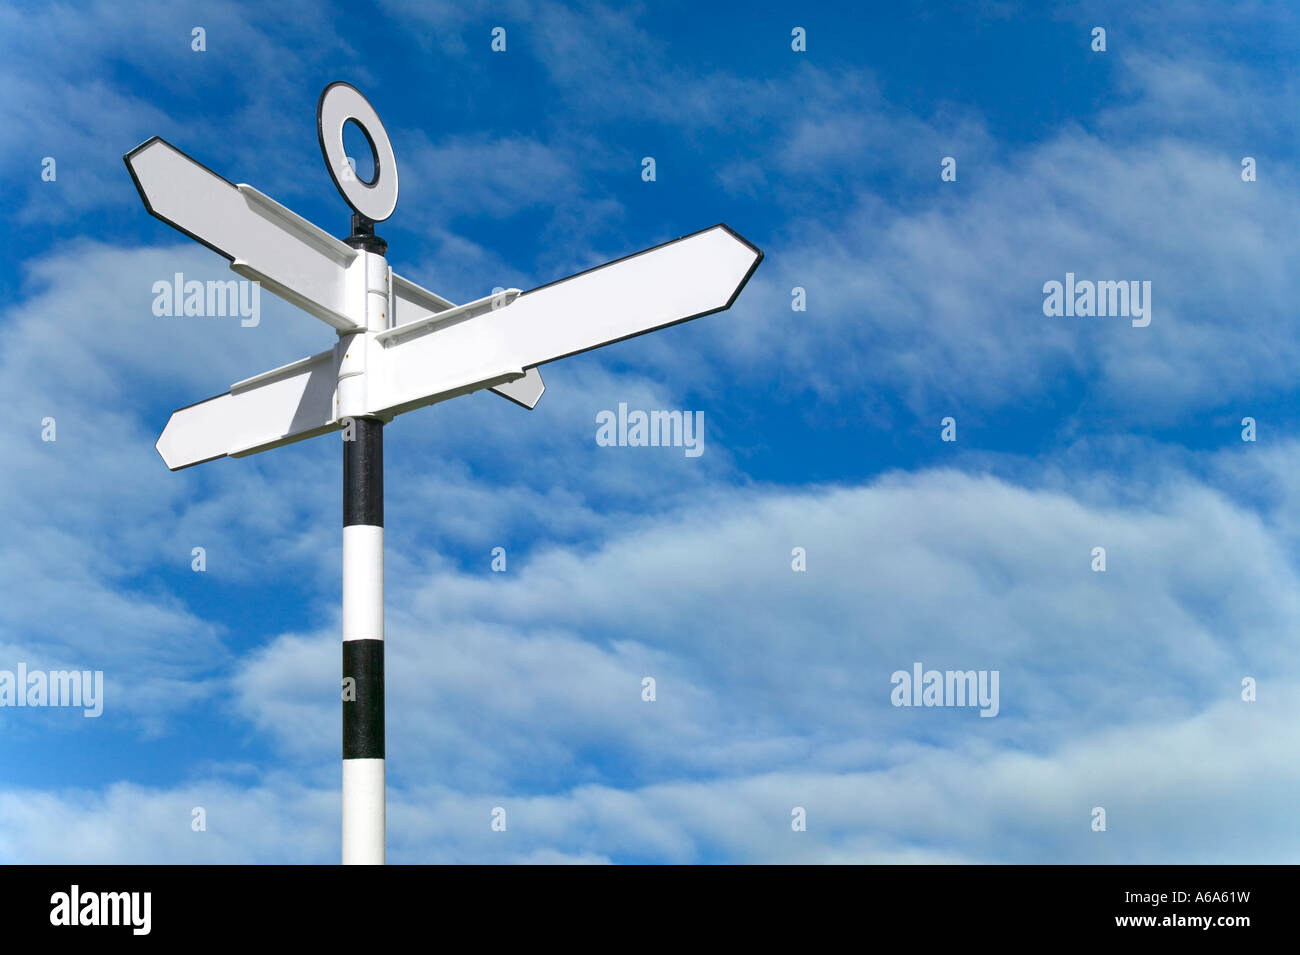 Blank road sign against a blue sky background - Stock Image